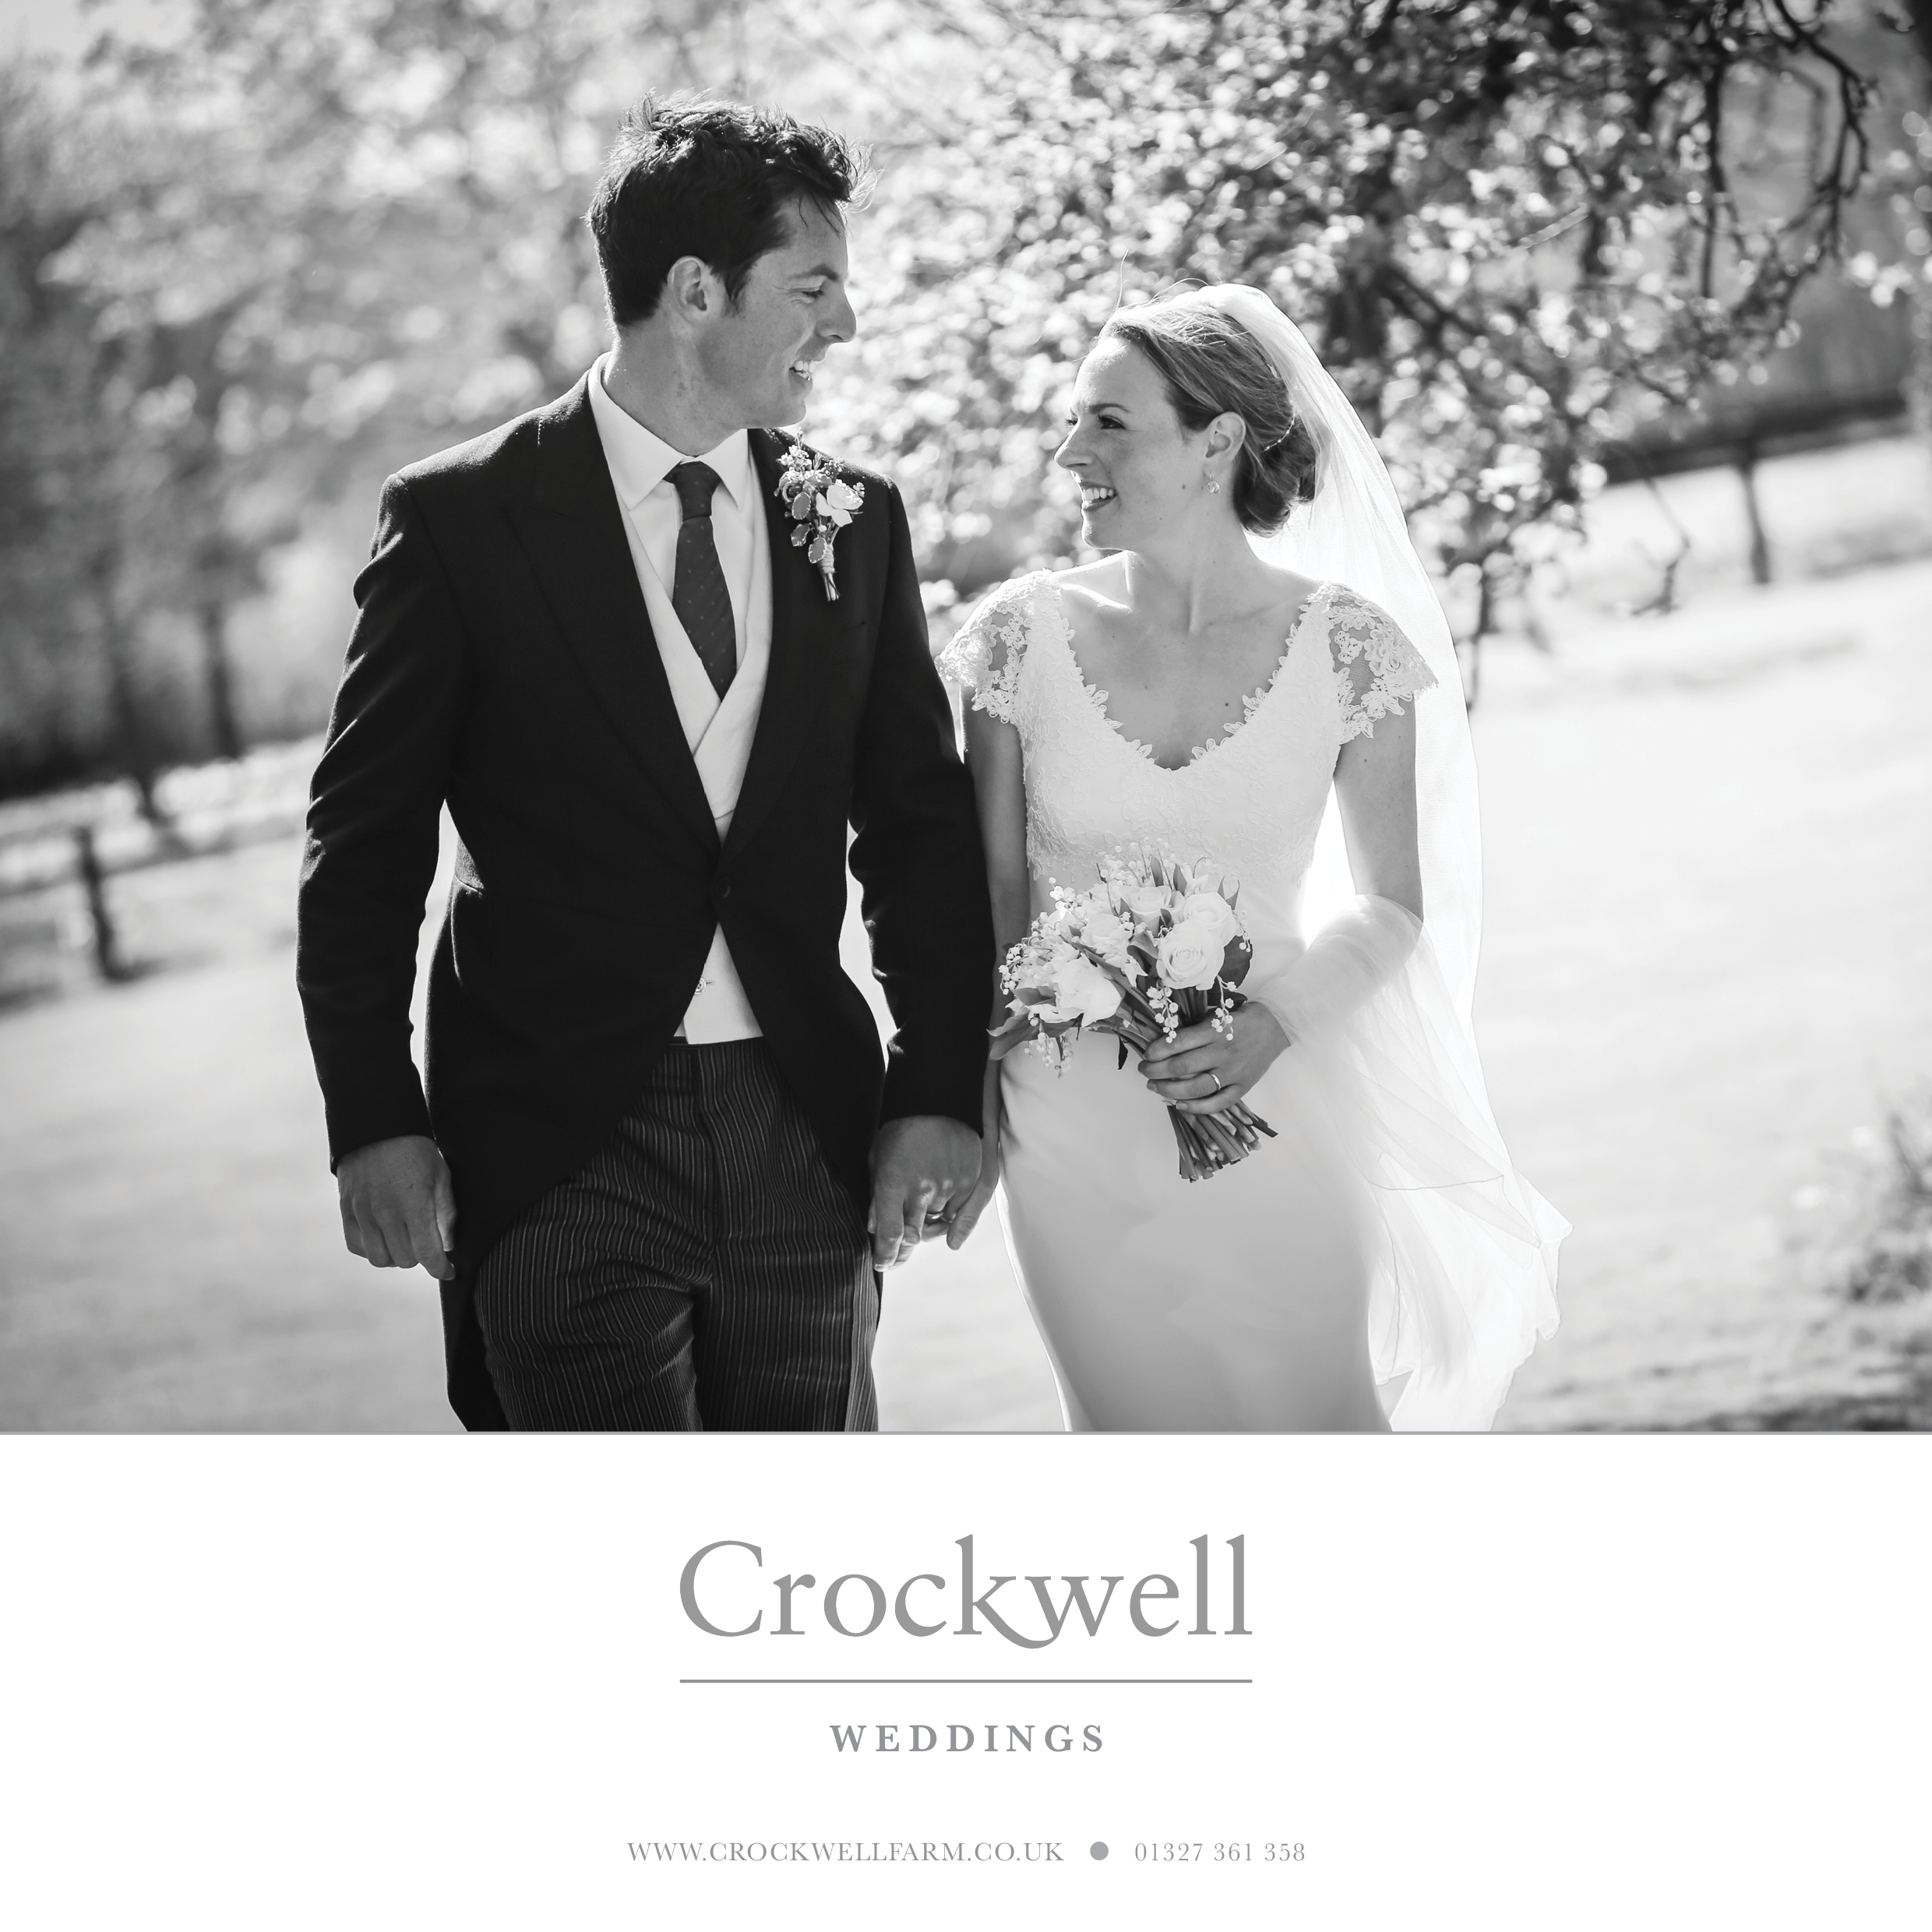 Crockerll Brochure 4 white.jpg